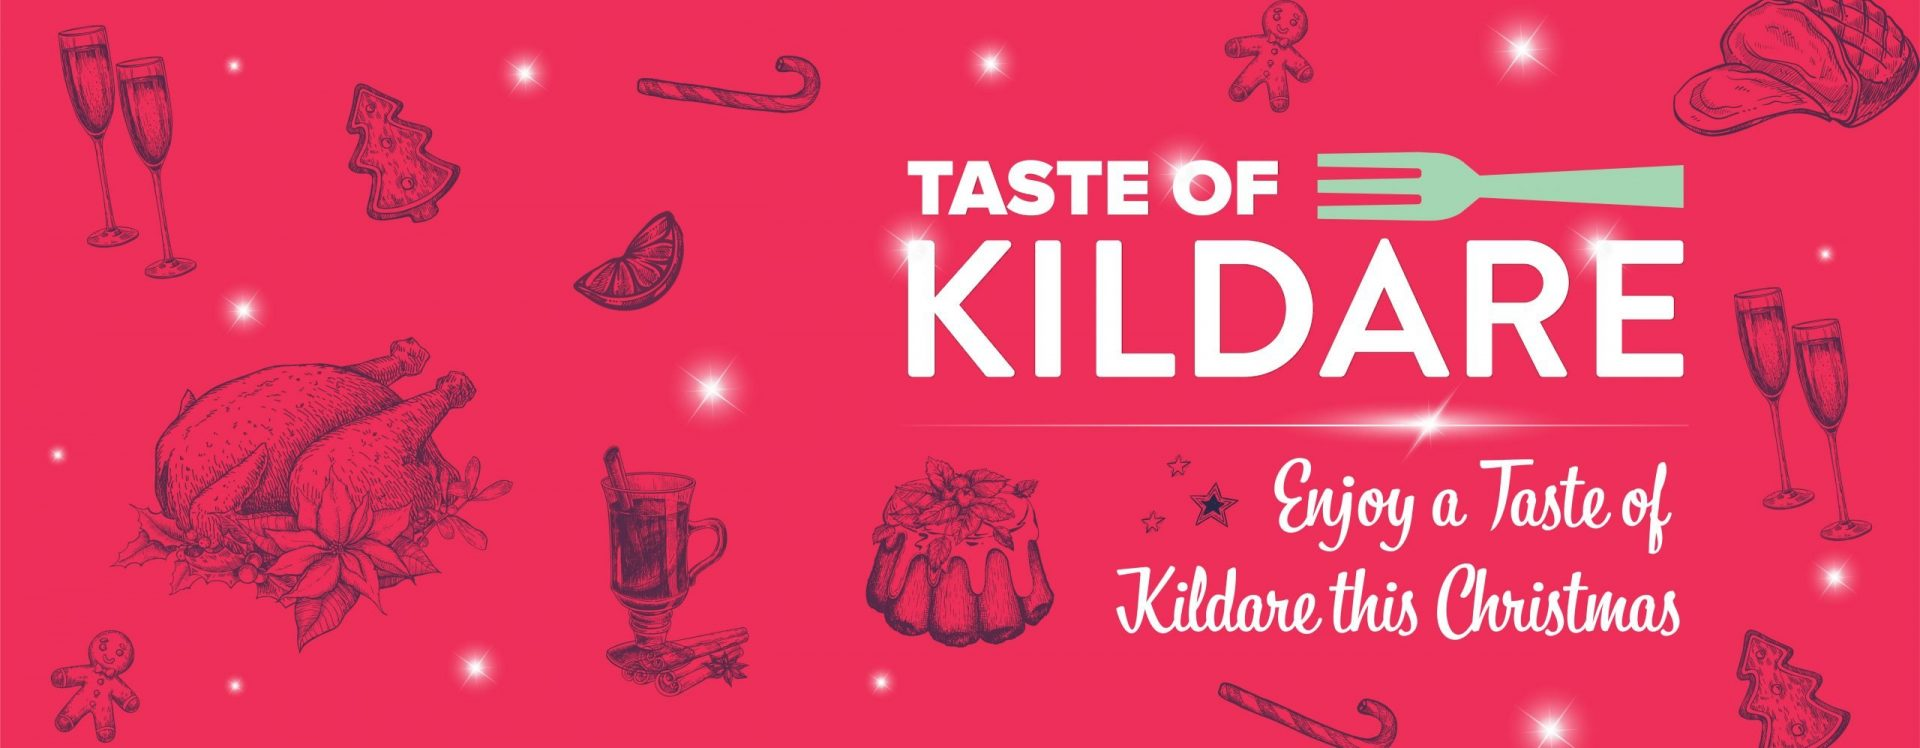 Taste of Kildare at Christmas